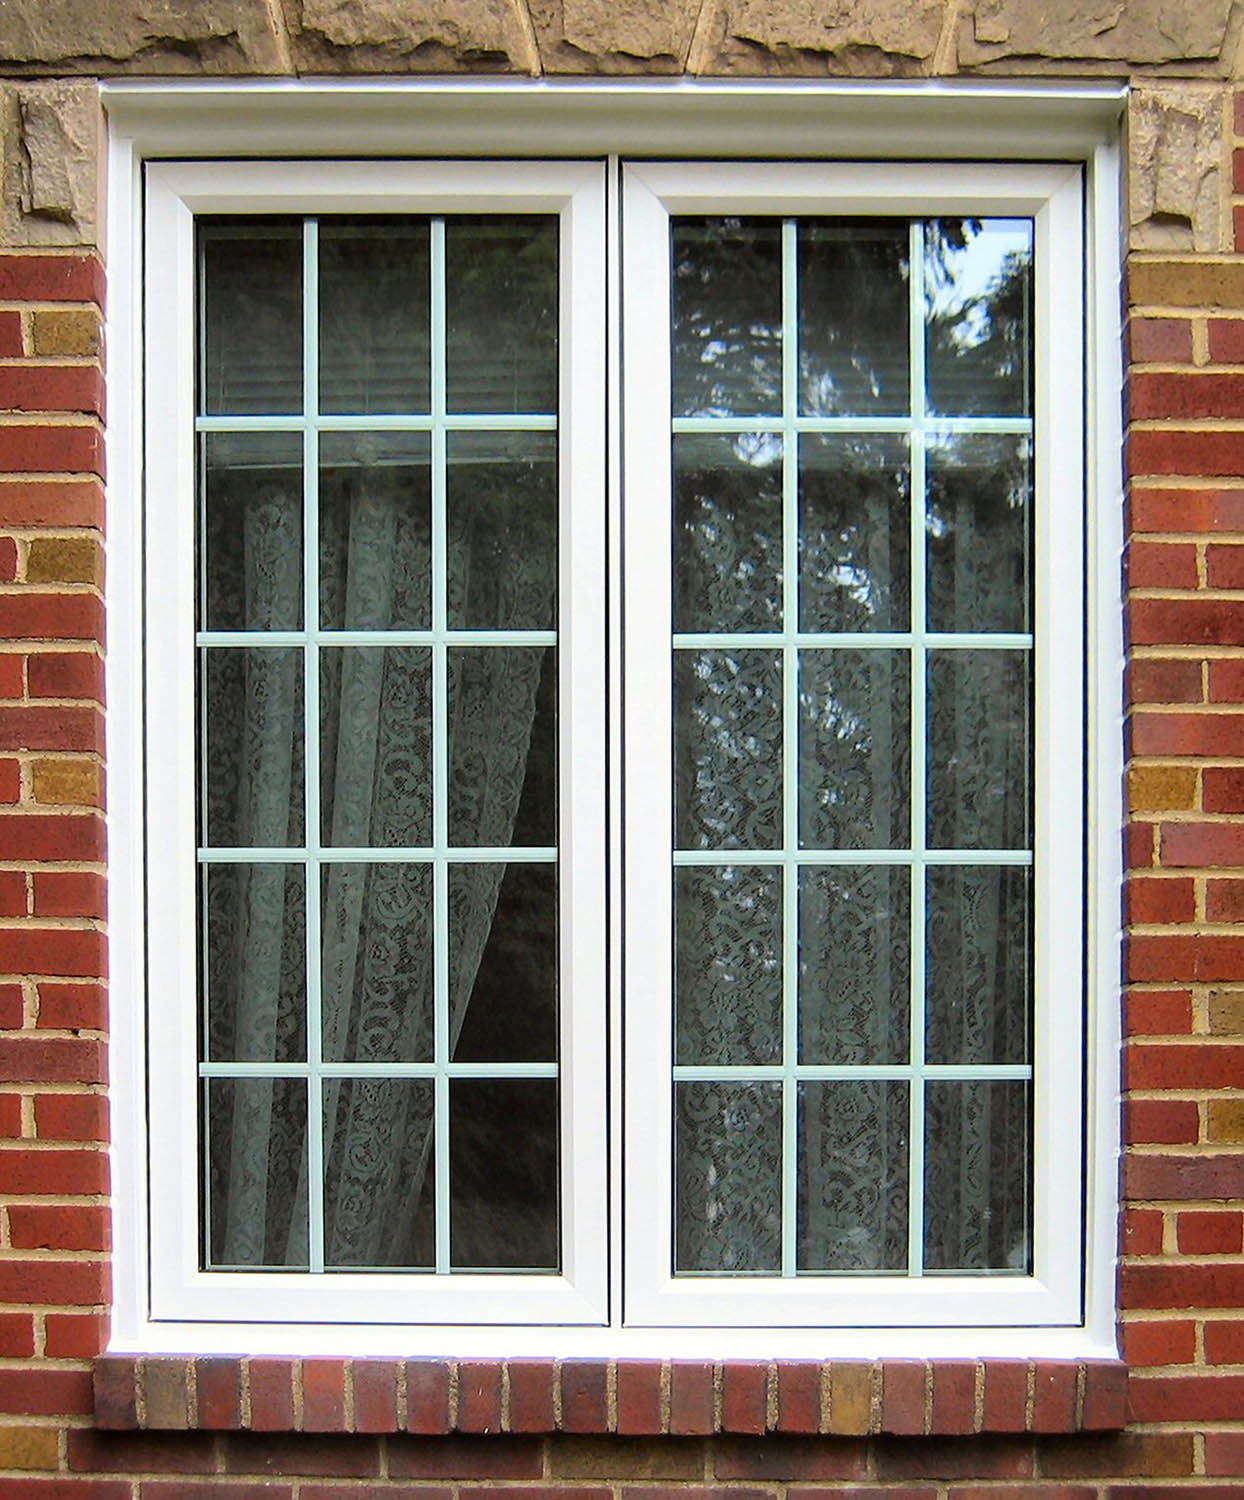 How to wash exterior windows homeadvisor for Cleaning exterior house windows